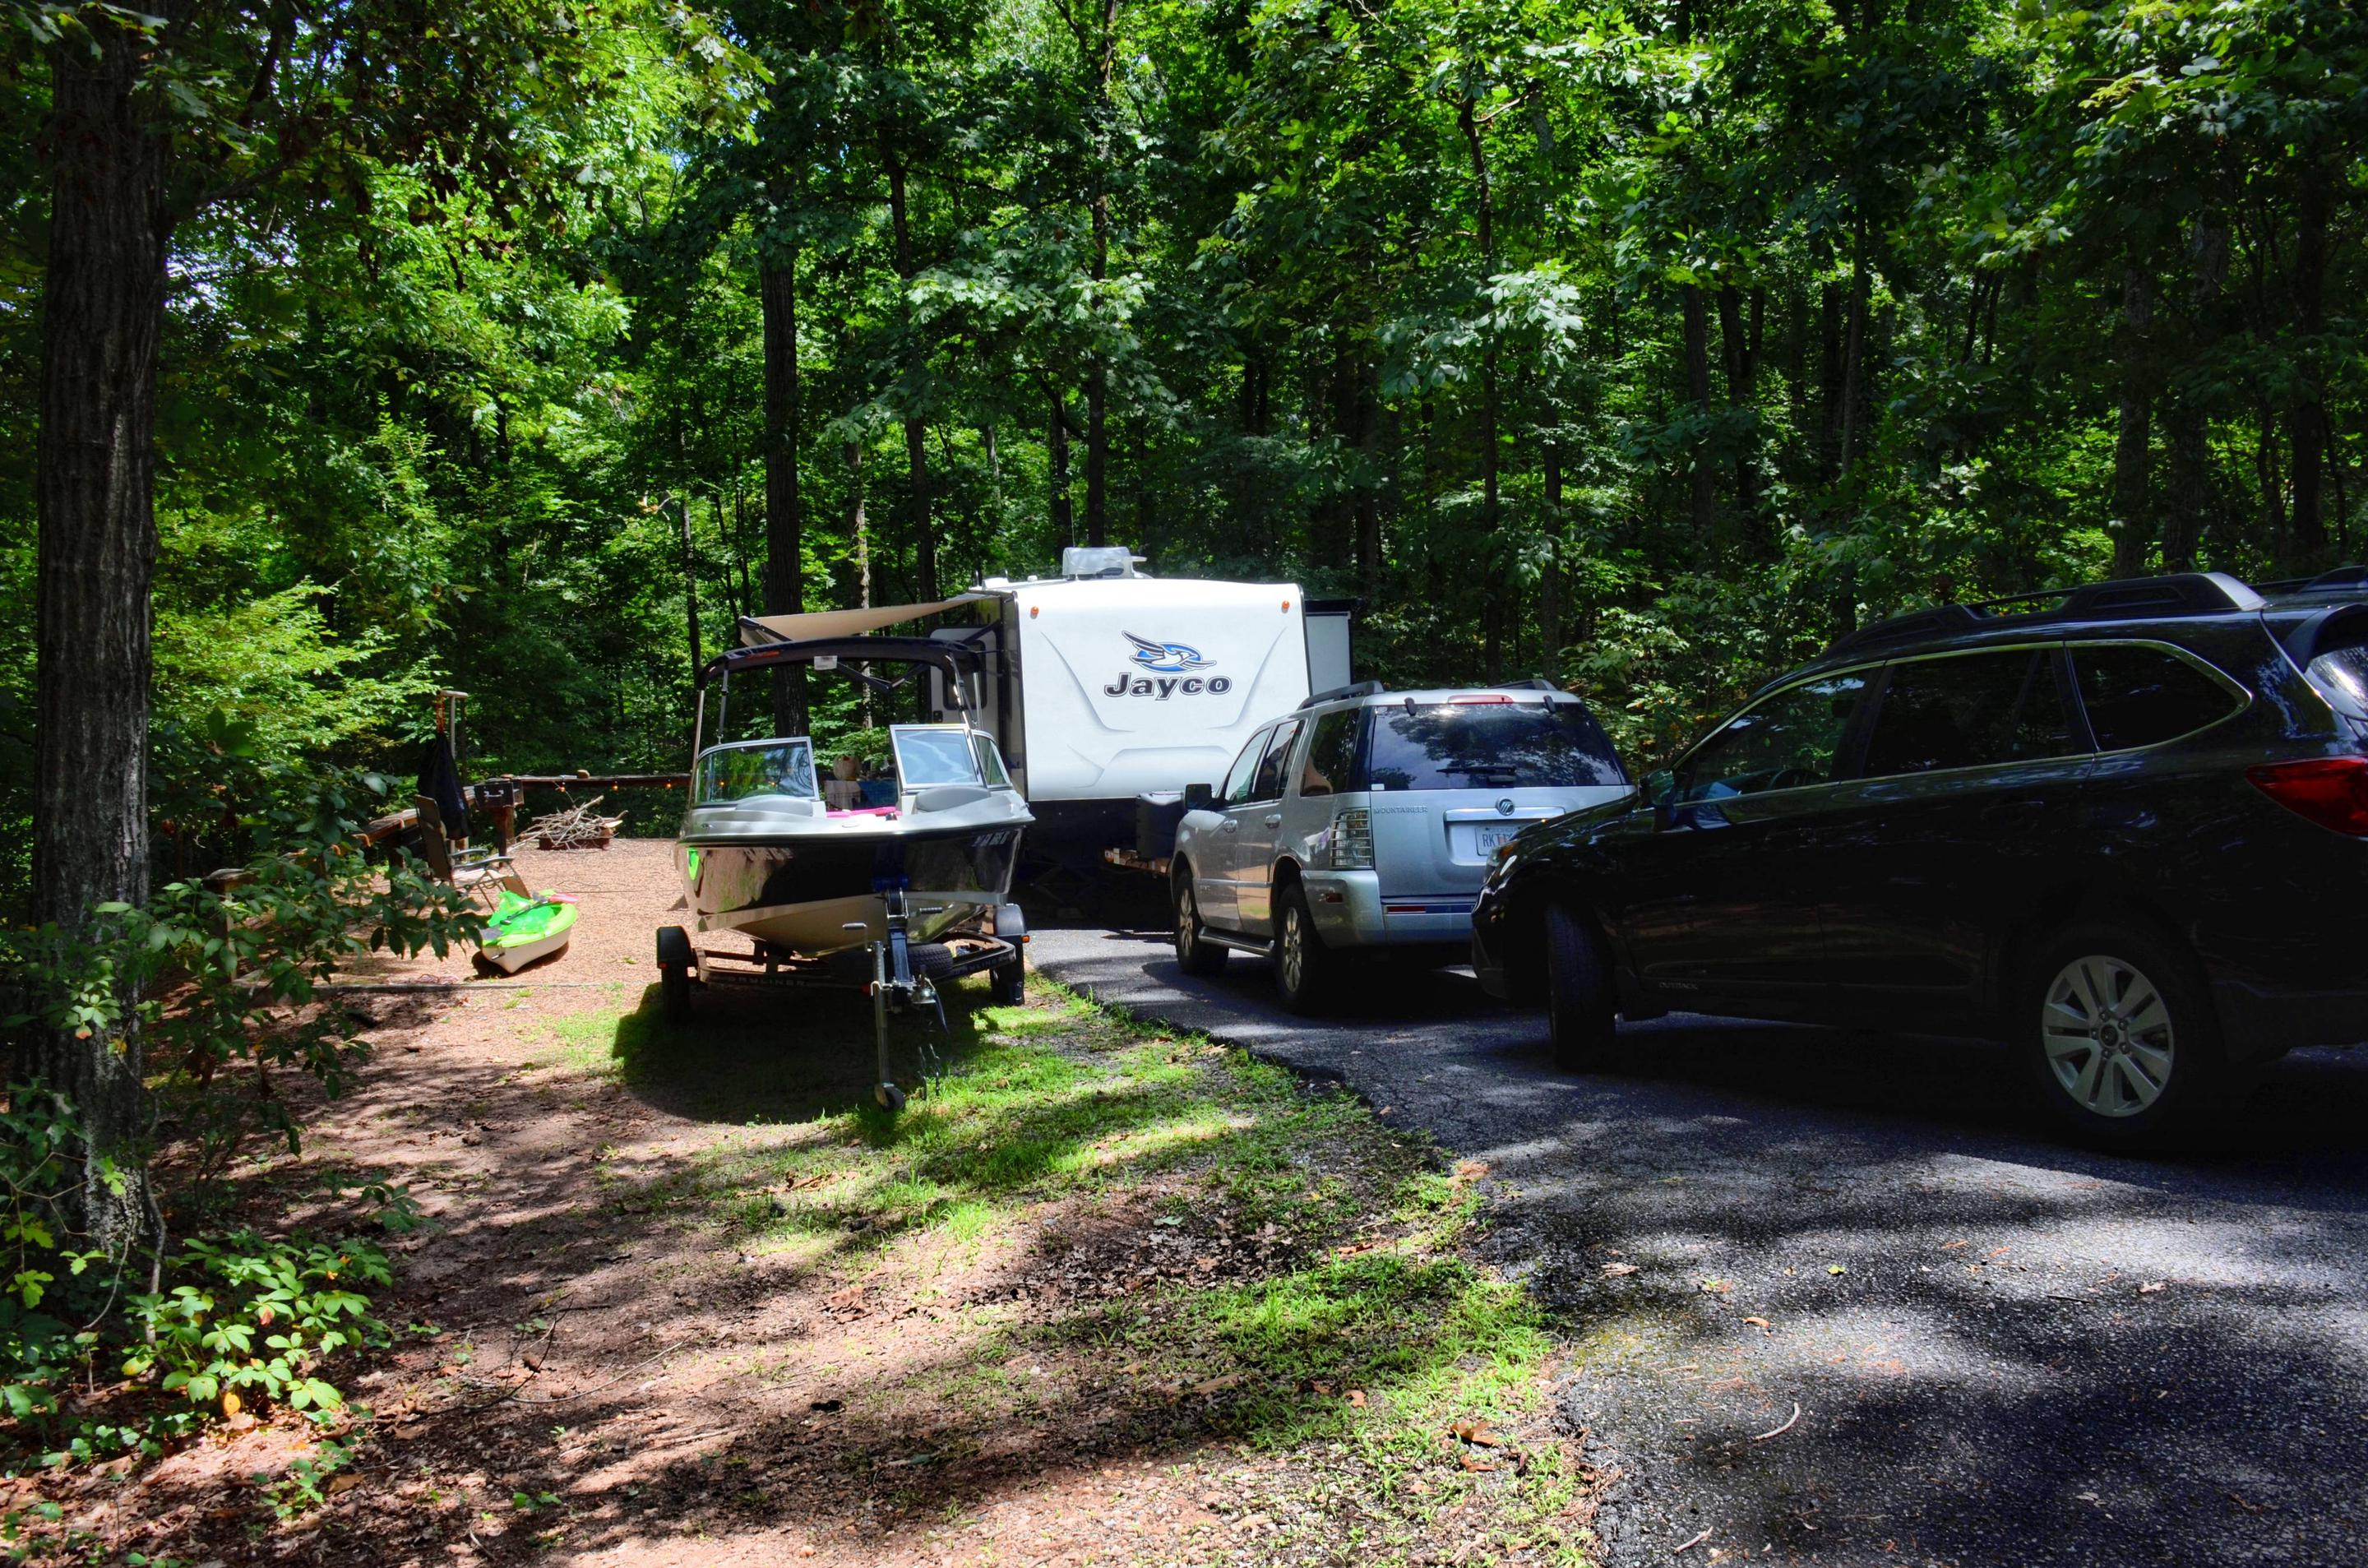 Awning-side clearance.McKinney Campground, campsite 15.